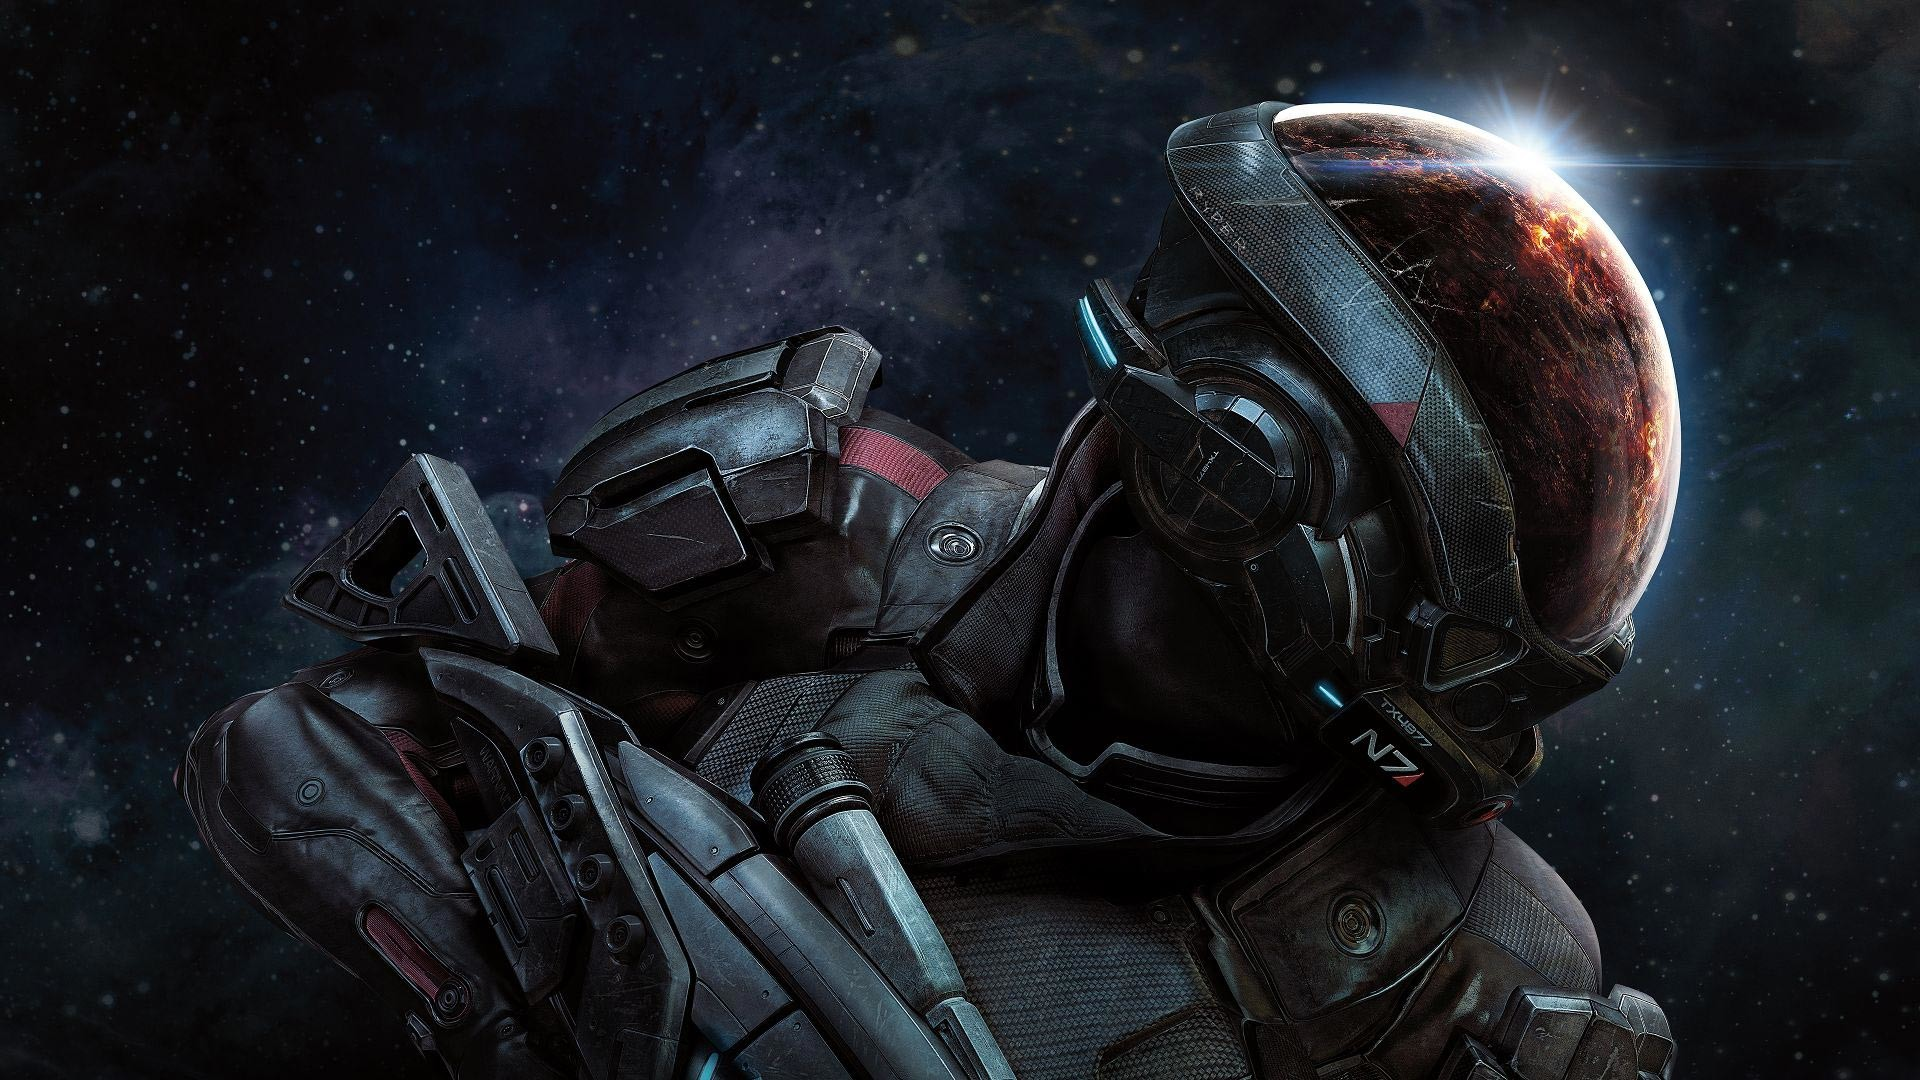 Res: 1920x1080, ... Ryder, N7 soldier. A great look at the new features in the game  including the many planets to explore and colonize as well as the new suit  and weapons.